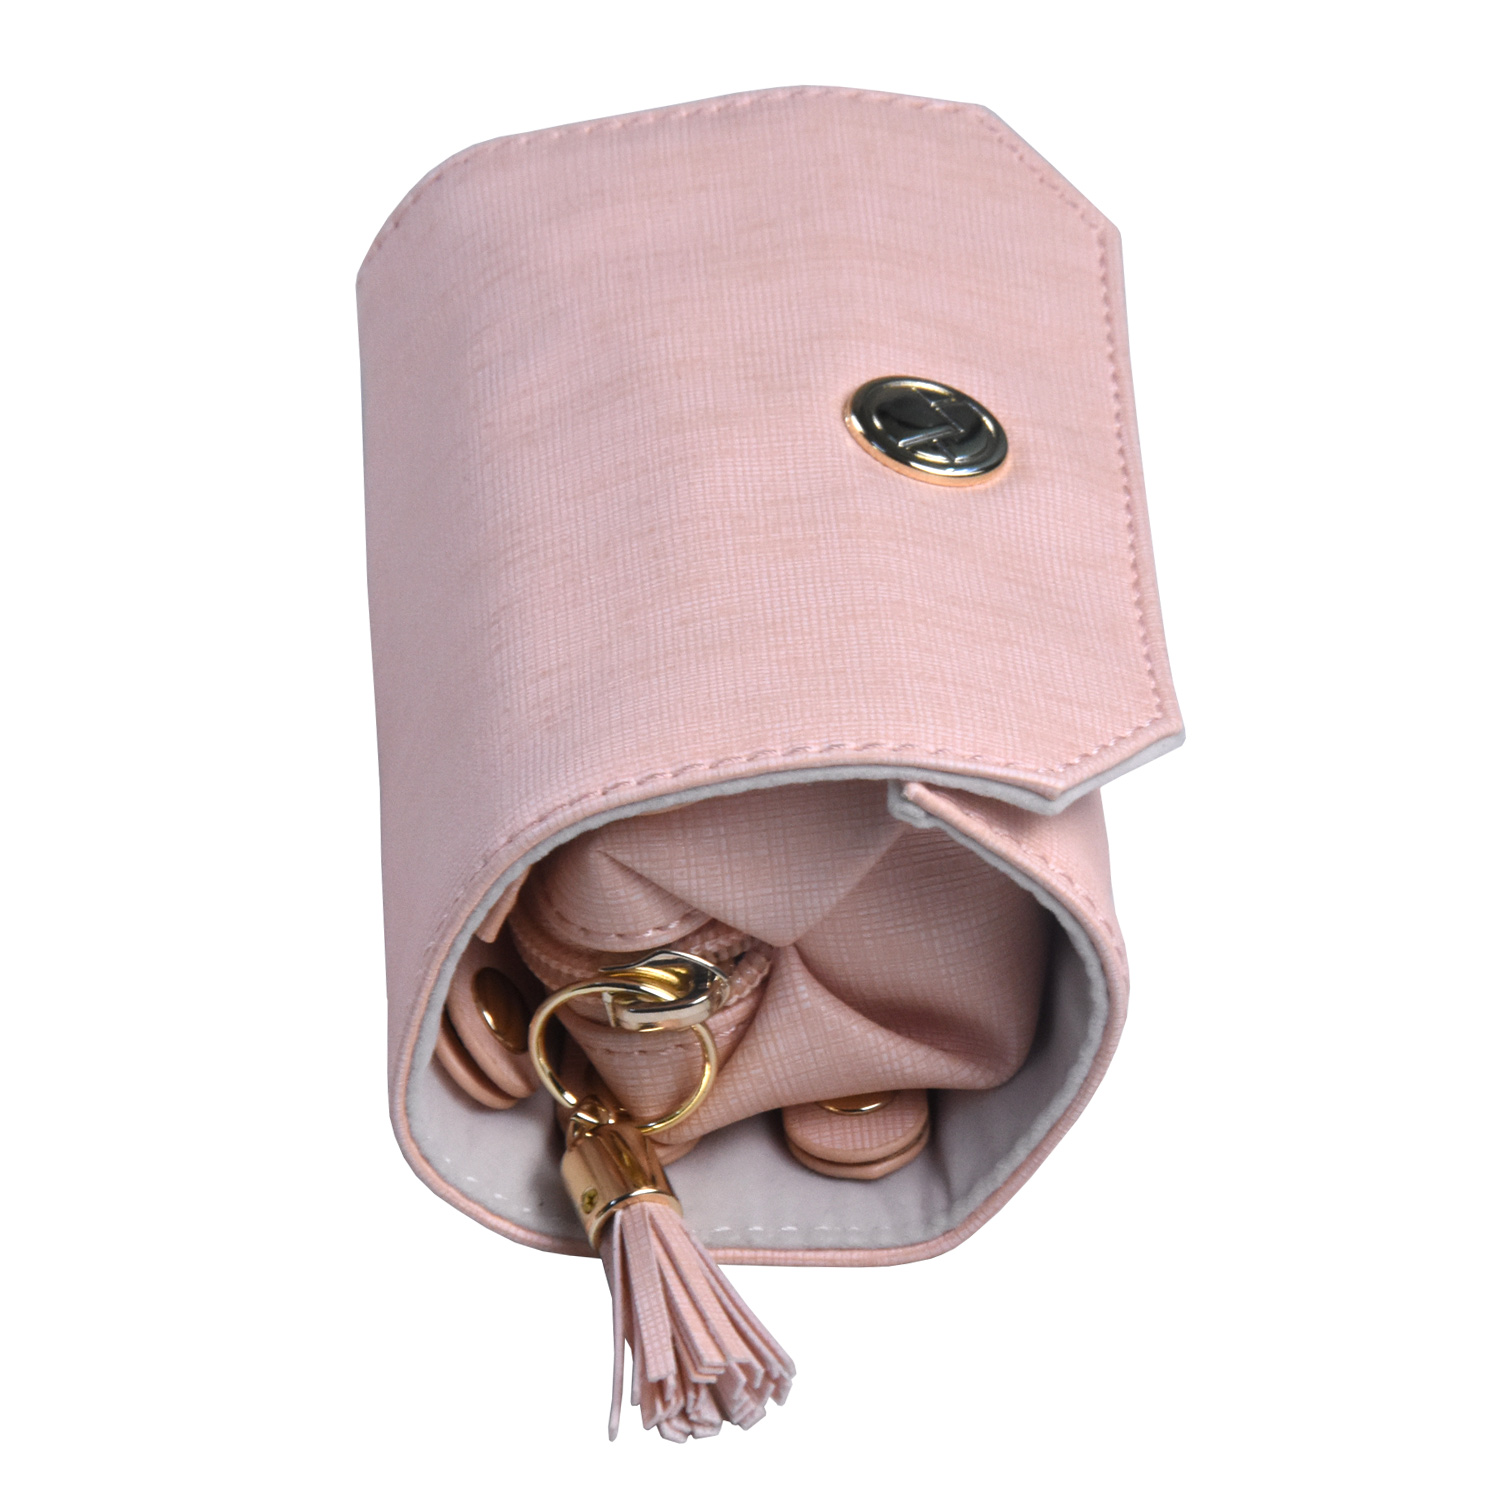 Functional Beautiful Portable Travel Display Velvet Jewelry Roll Bag